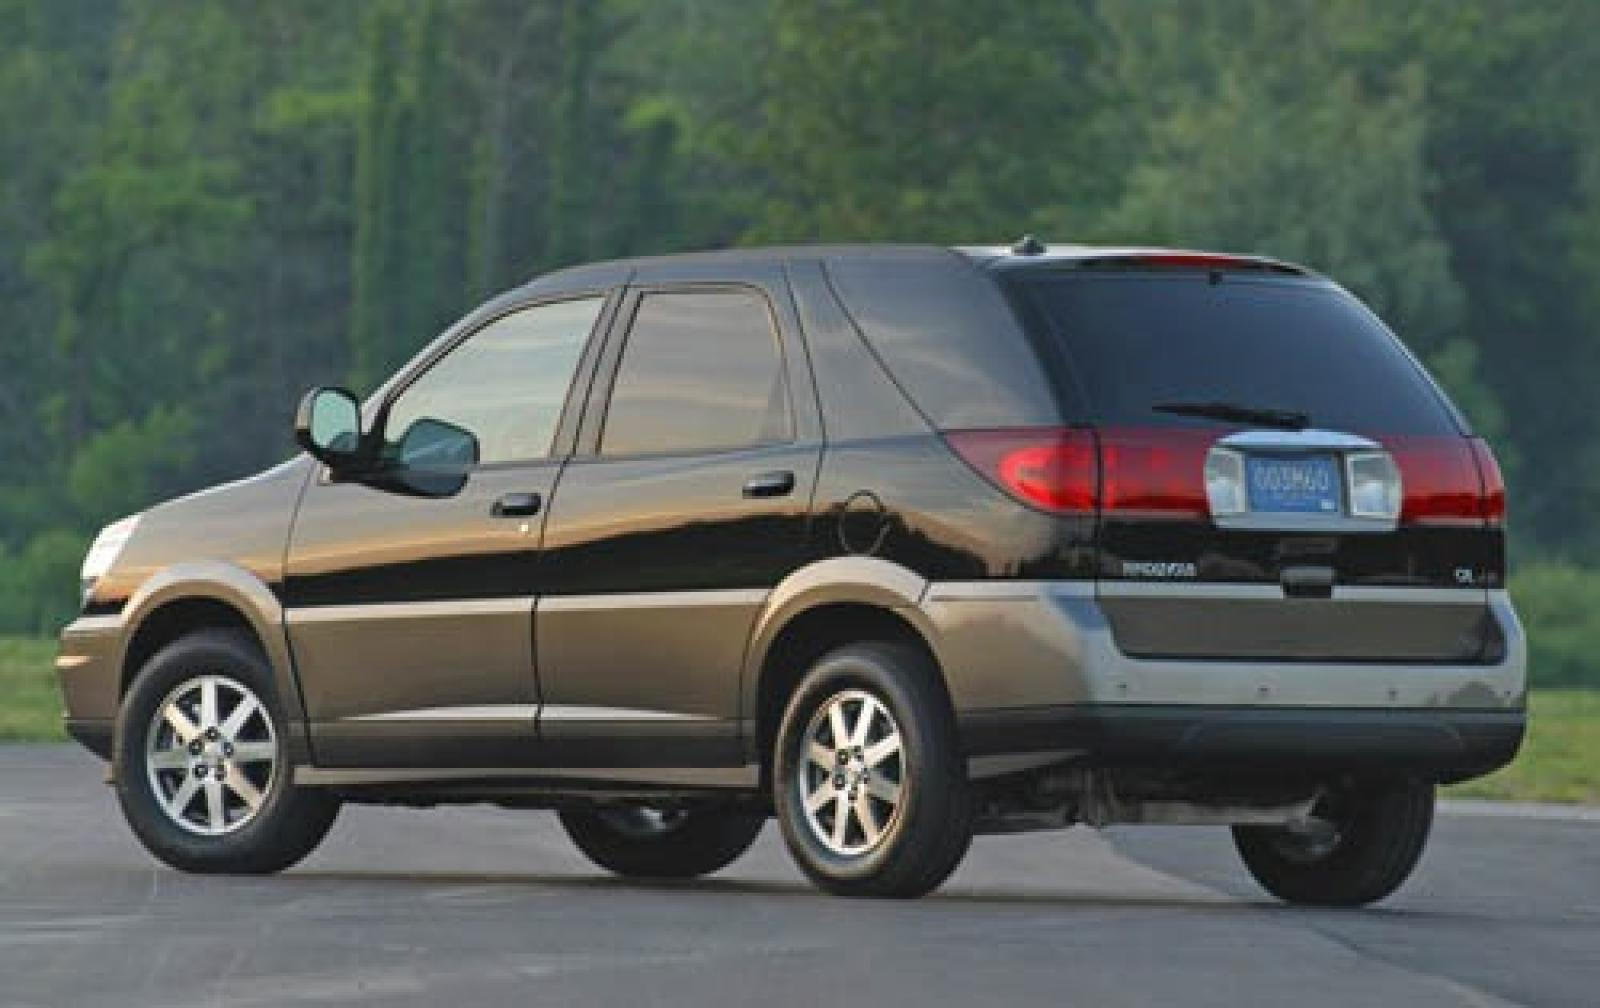 buick rendezvous information and photos zombiedrive 800 1024 1280 1600 origin 2006 buick rendezvous